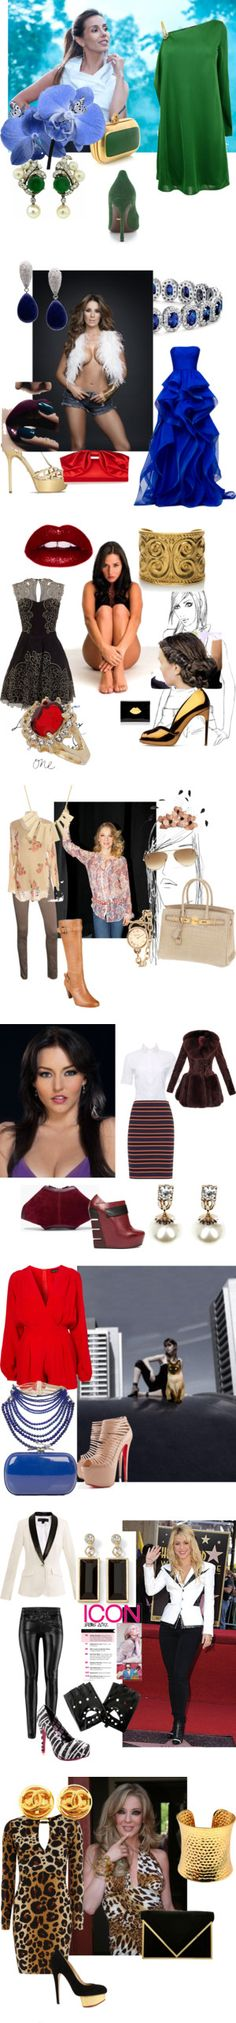 """mujeres latinas bellas y glamurosas ♥♥"" by lopezt2020 ❤ liked on Polyvore"